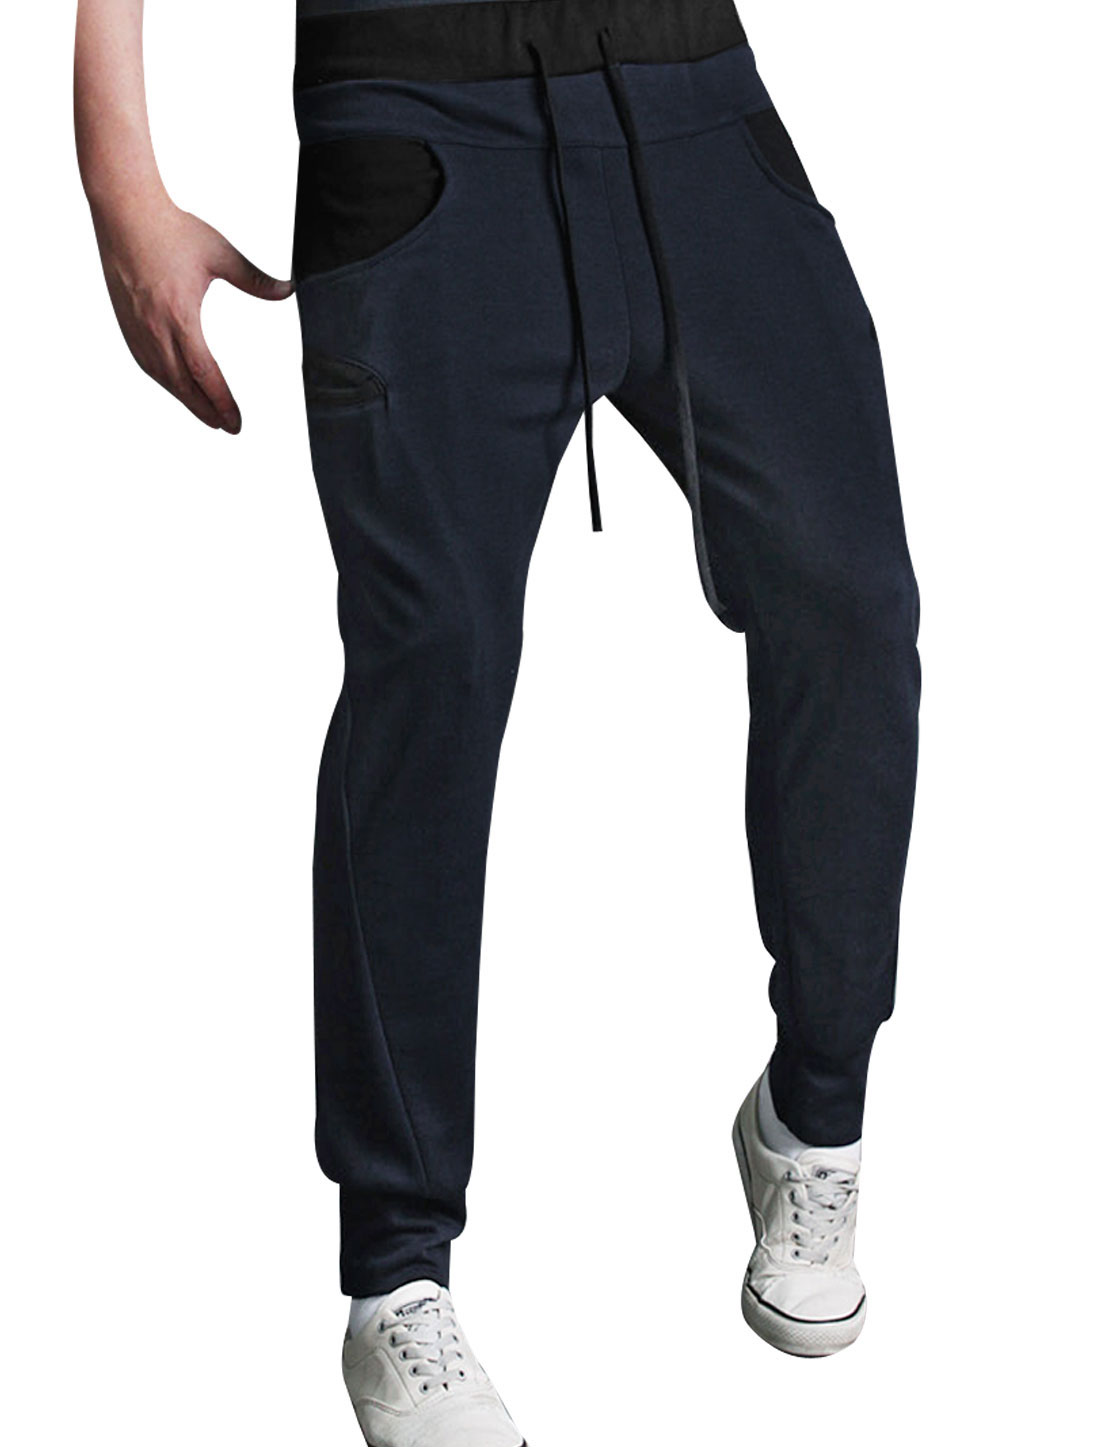 Mens Low Rise Two Front Top Pockets Dark Blue Drawcord Sports Pants W28